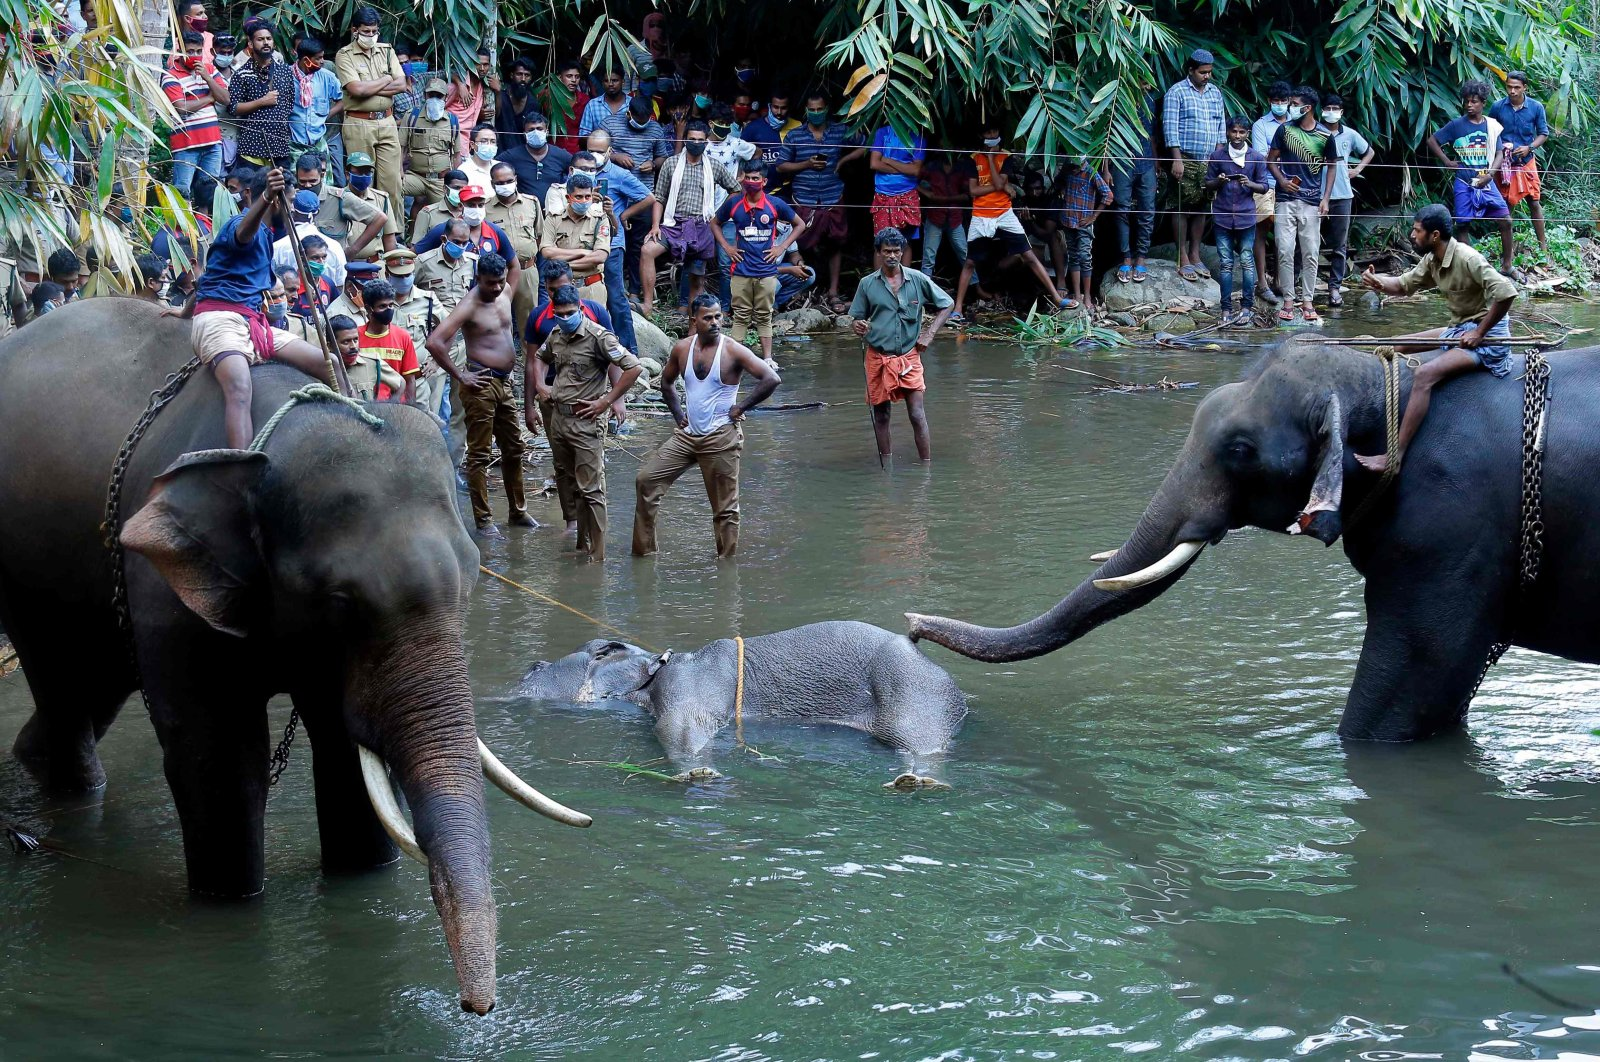 Policemen and onlookers stand on the banks of the Velliyar River in the Palakkad district of Kerala state as a dead wild elephant that was pregnant is retrieved following injuries caused by an explosive-filled pineapple, India, May 27, 2020. (AFP Photo)